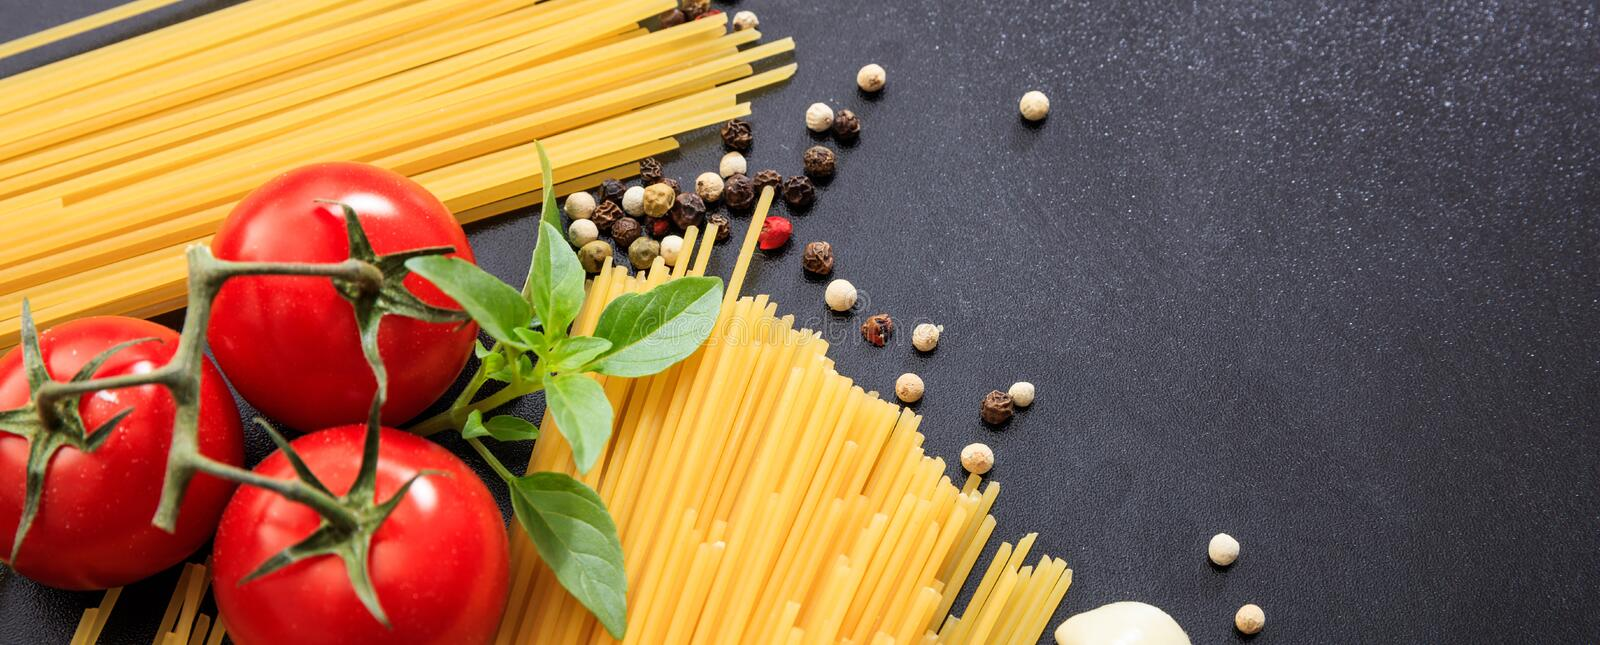 Spaghetti pasta, tomatoes, garlic and basil on black background, banner stock images